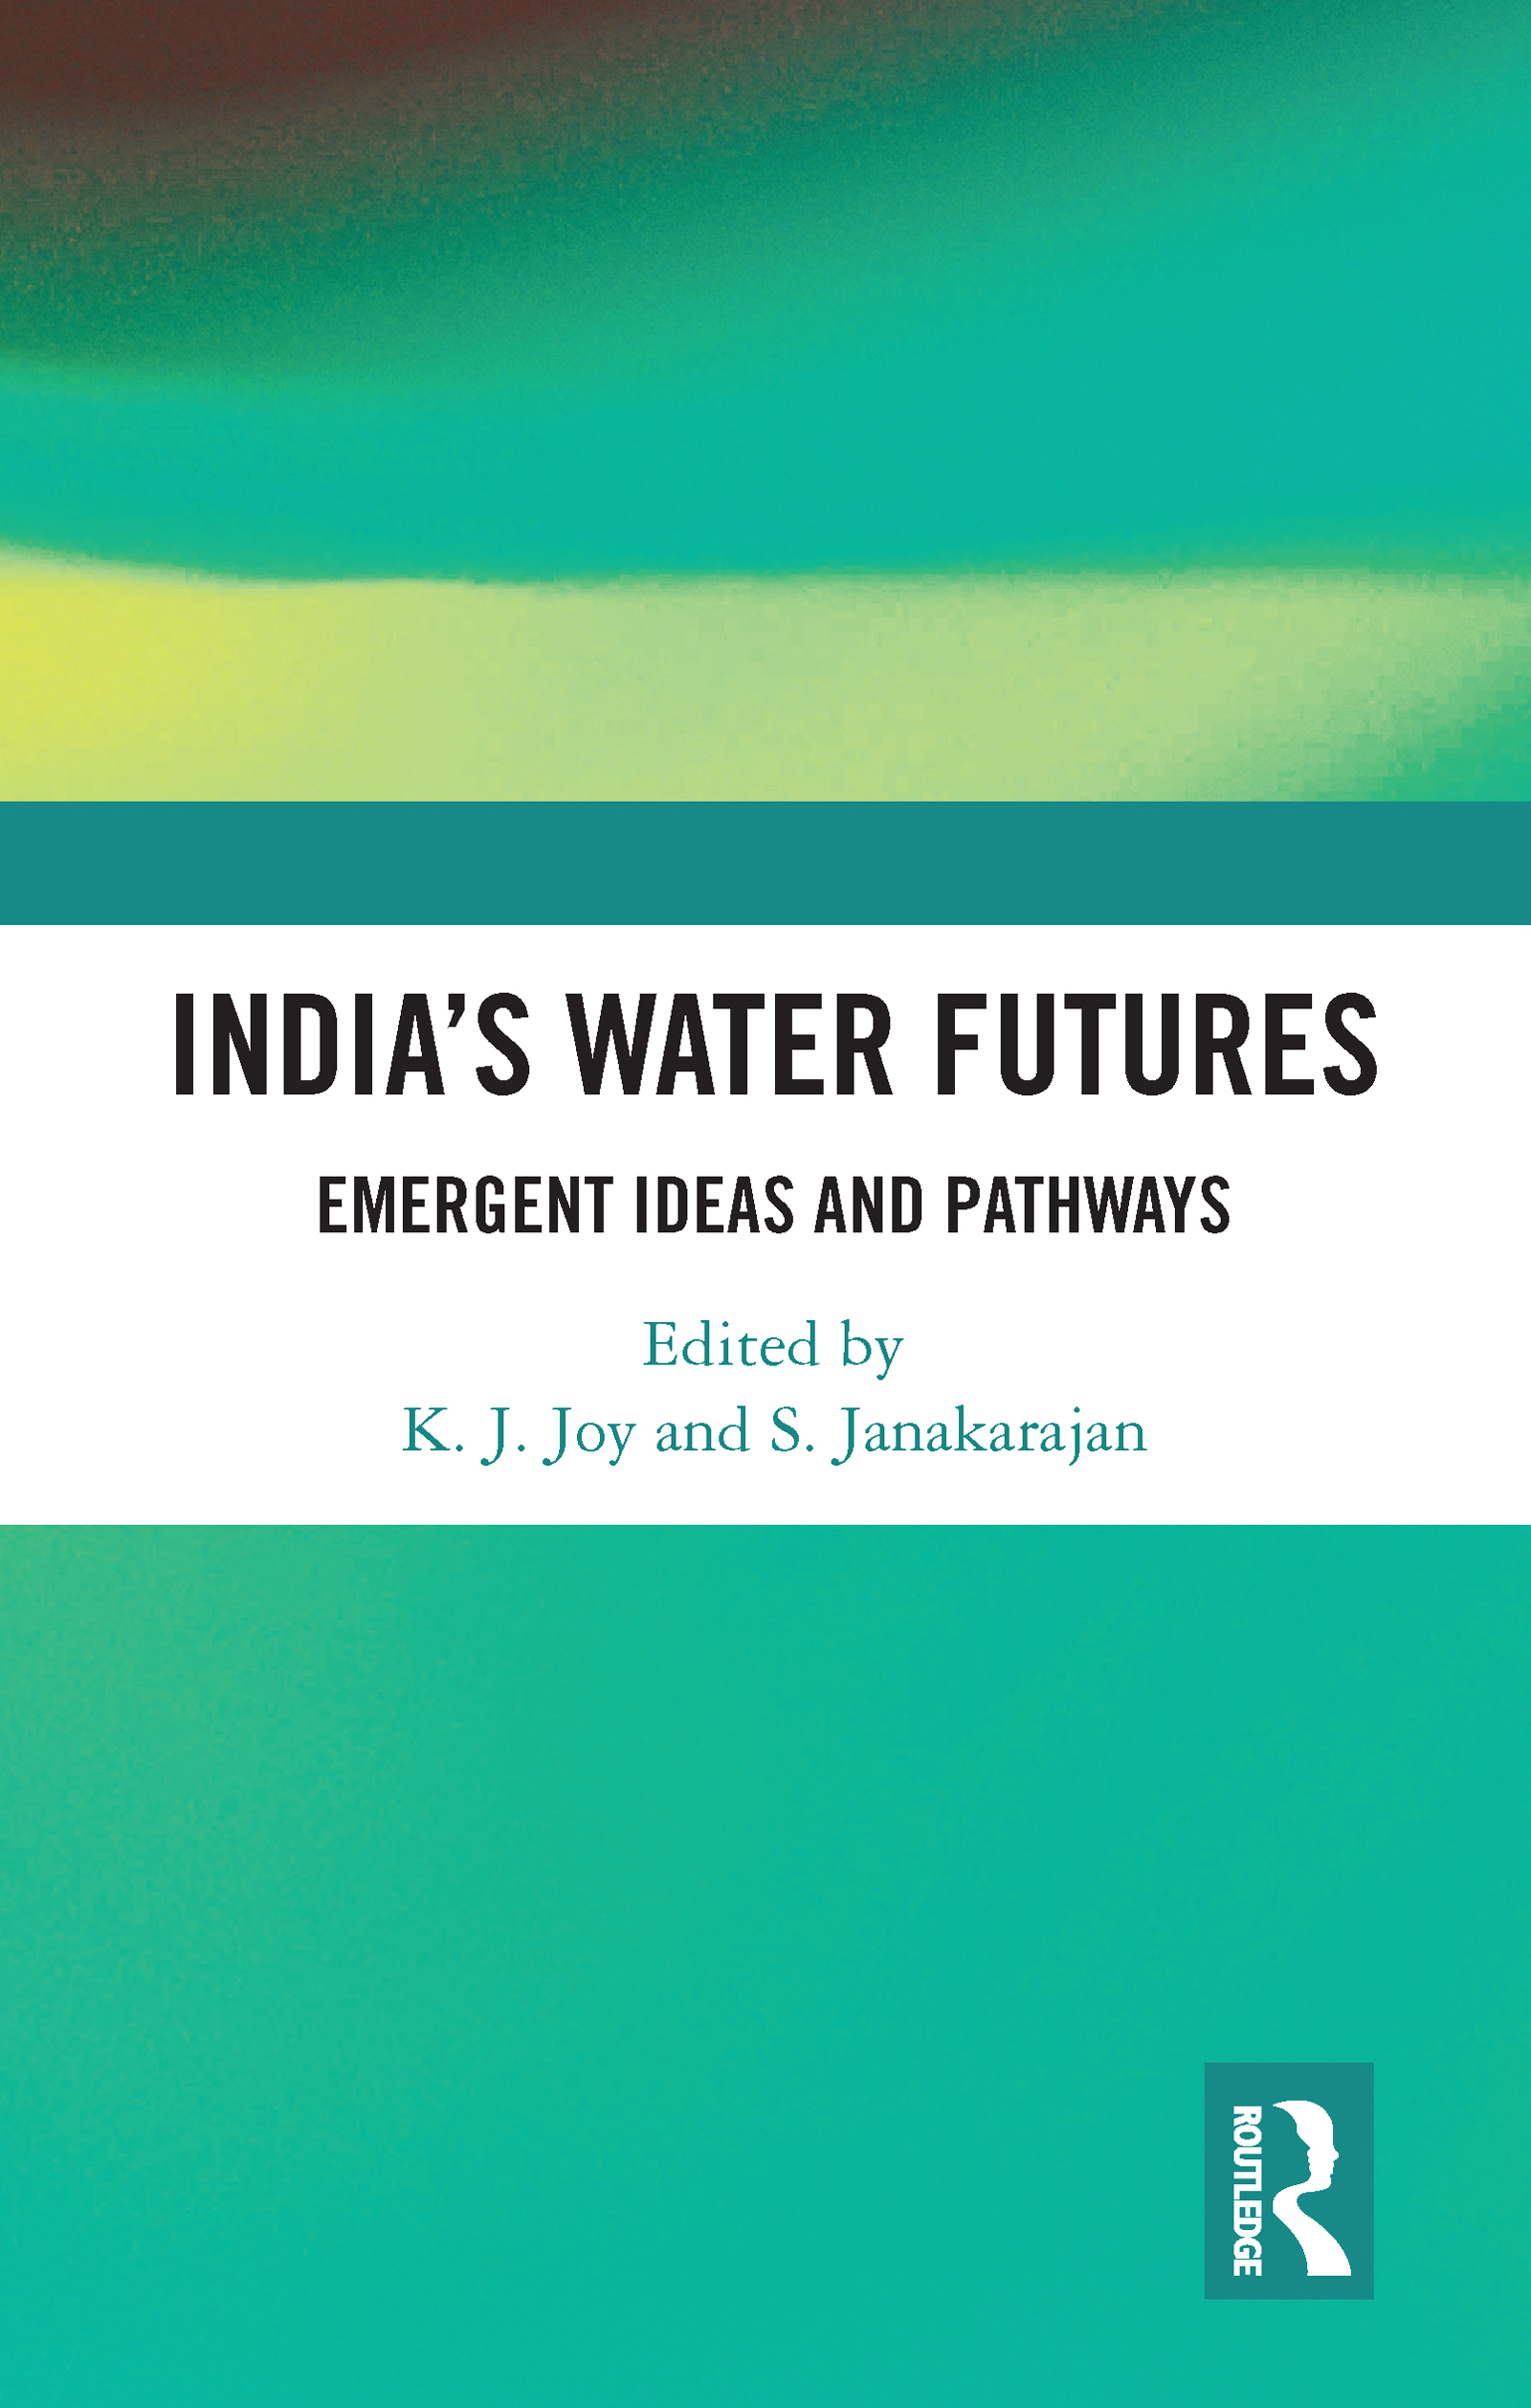 India's Water Futures